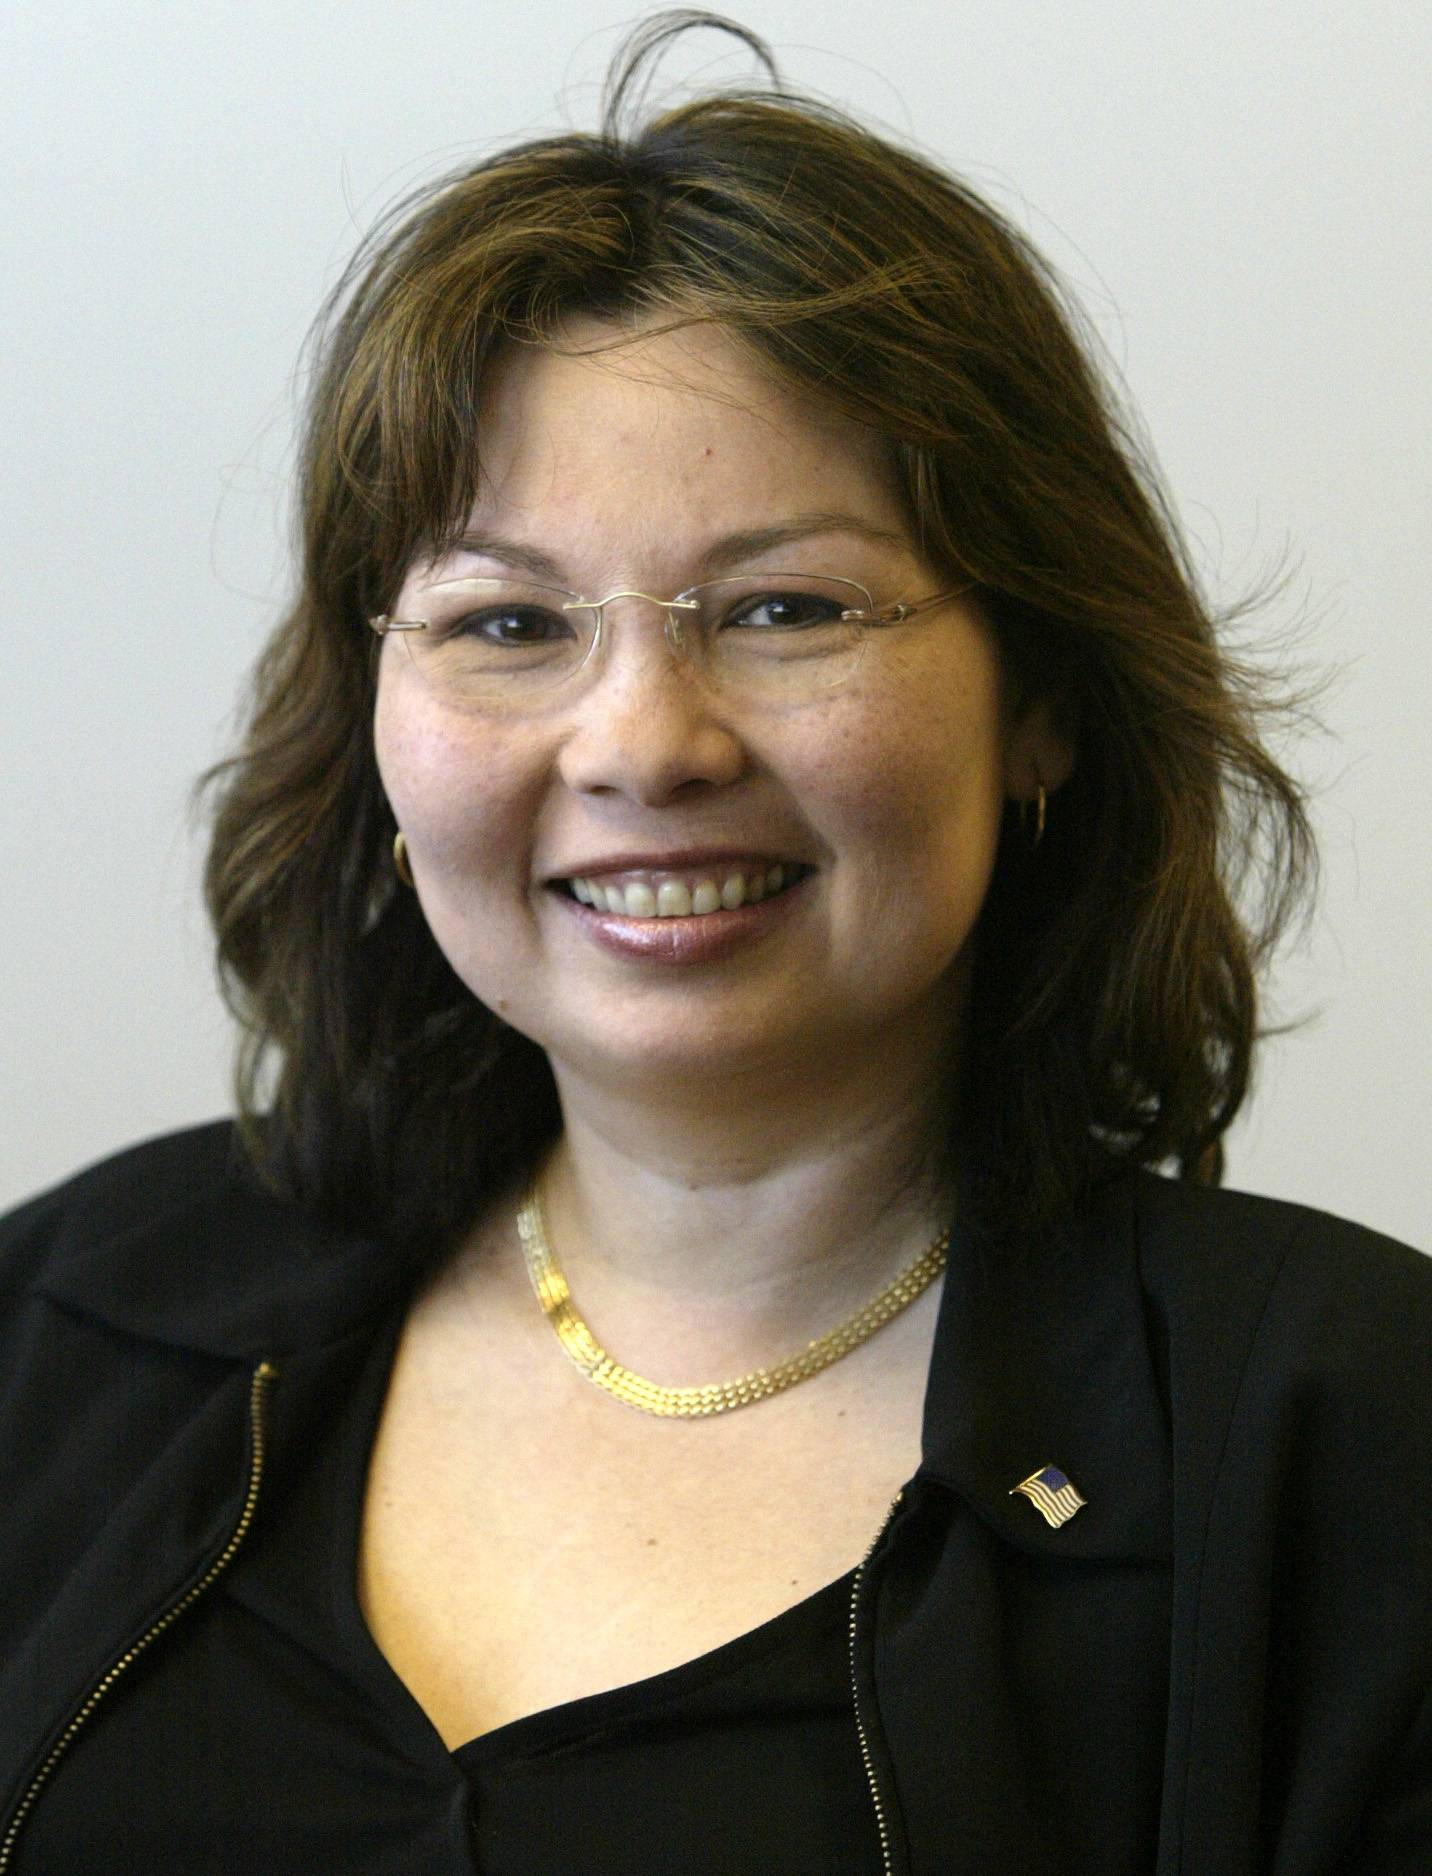 Tammy Duckworth, running for 8th District U.S. Representative